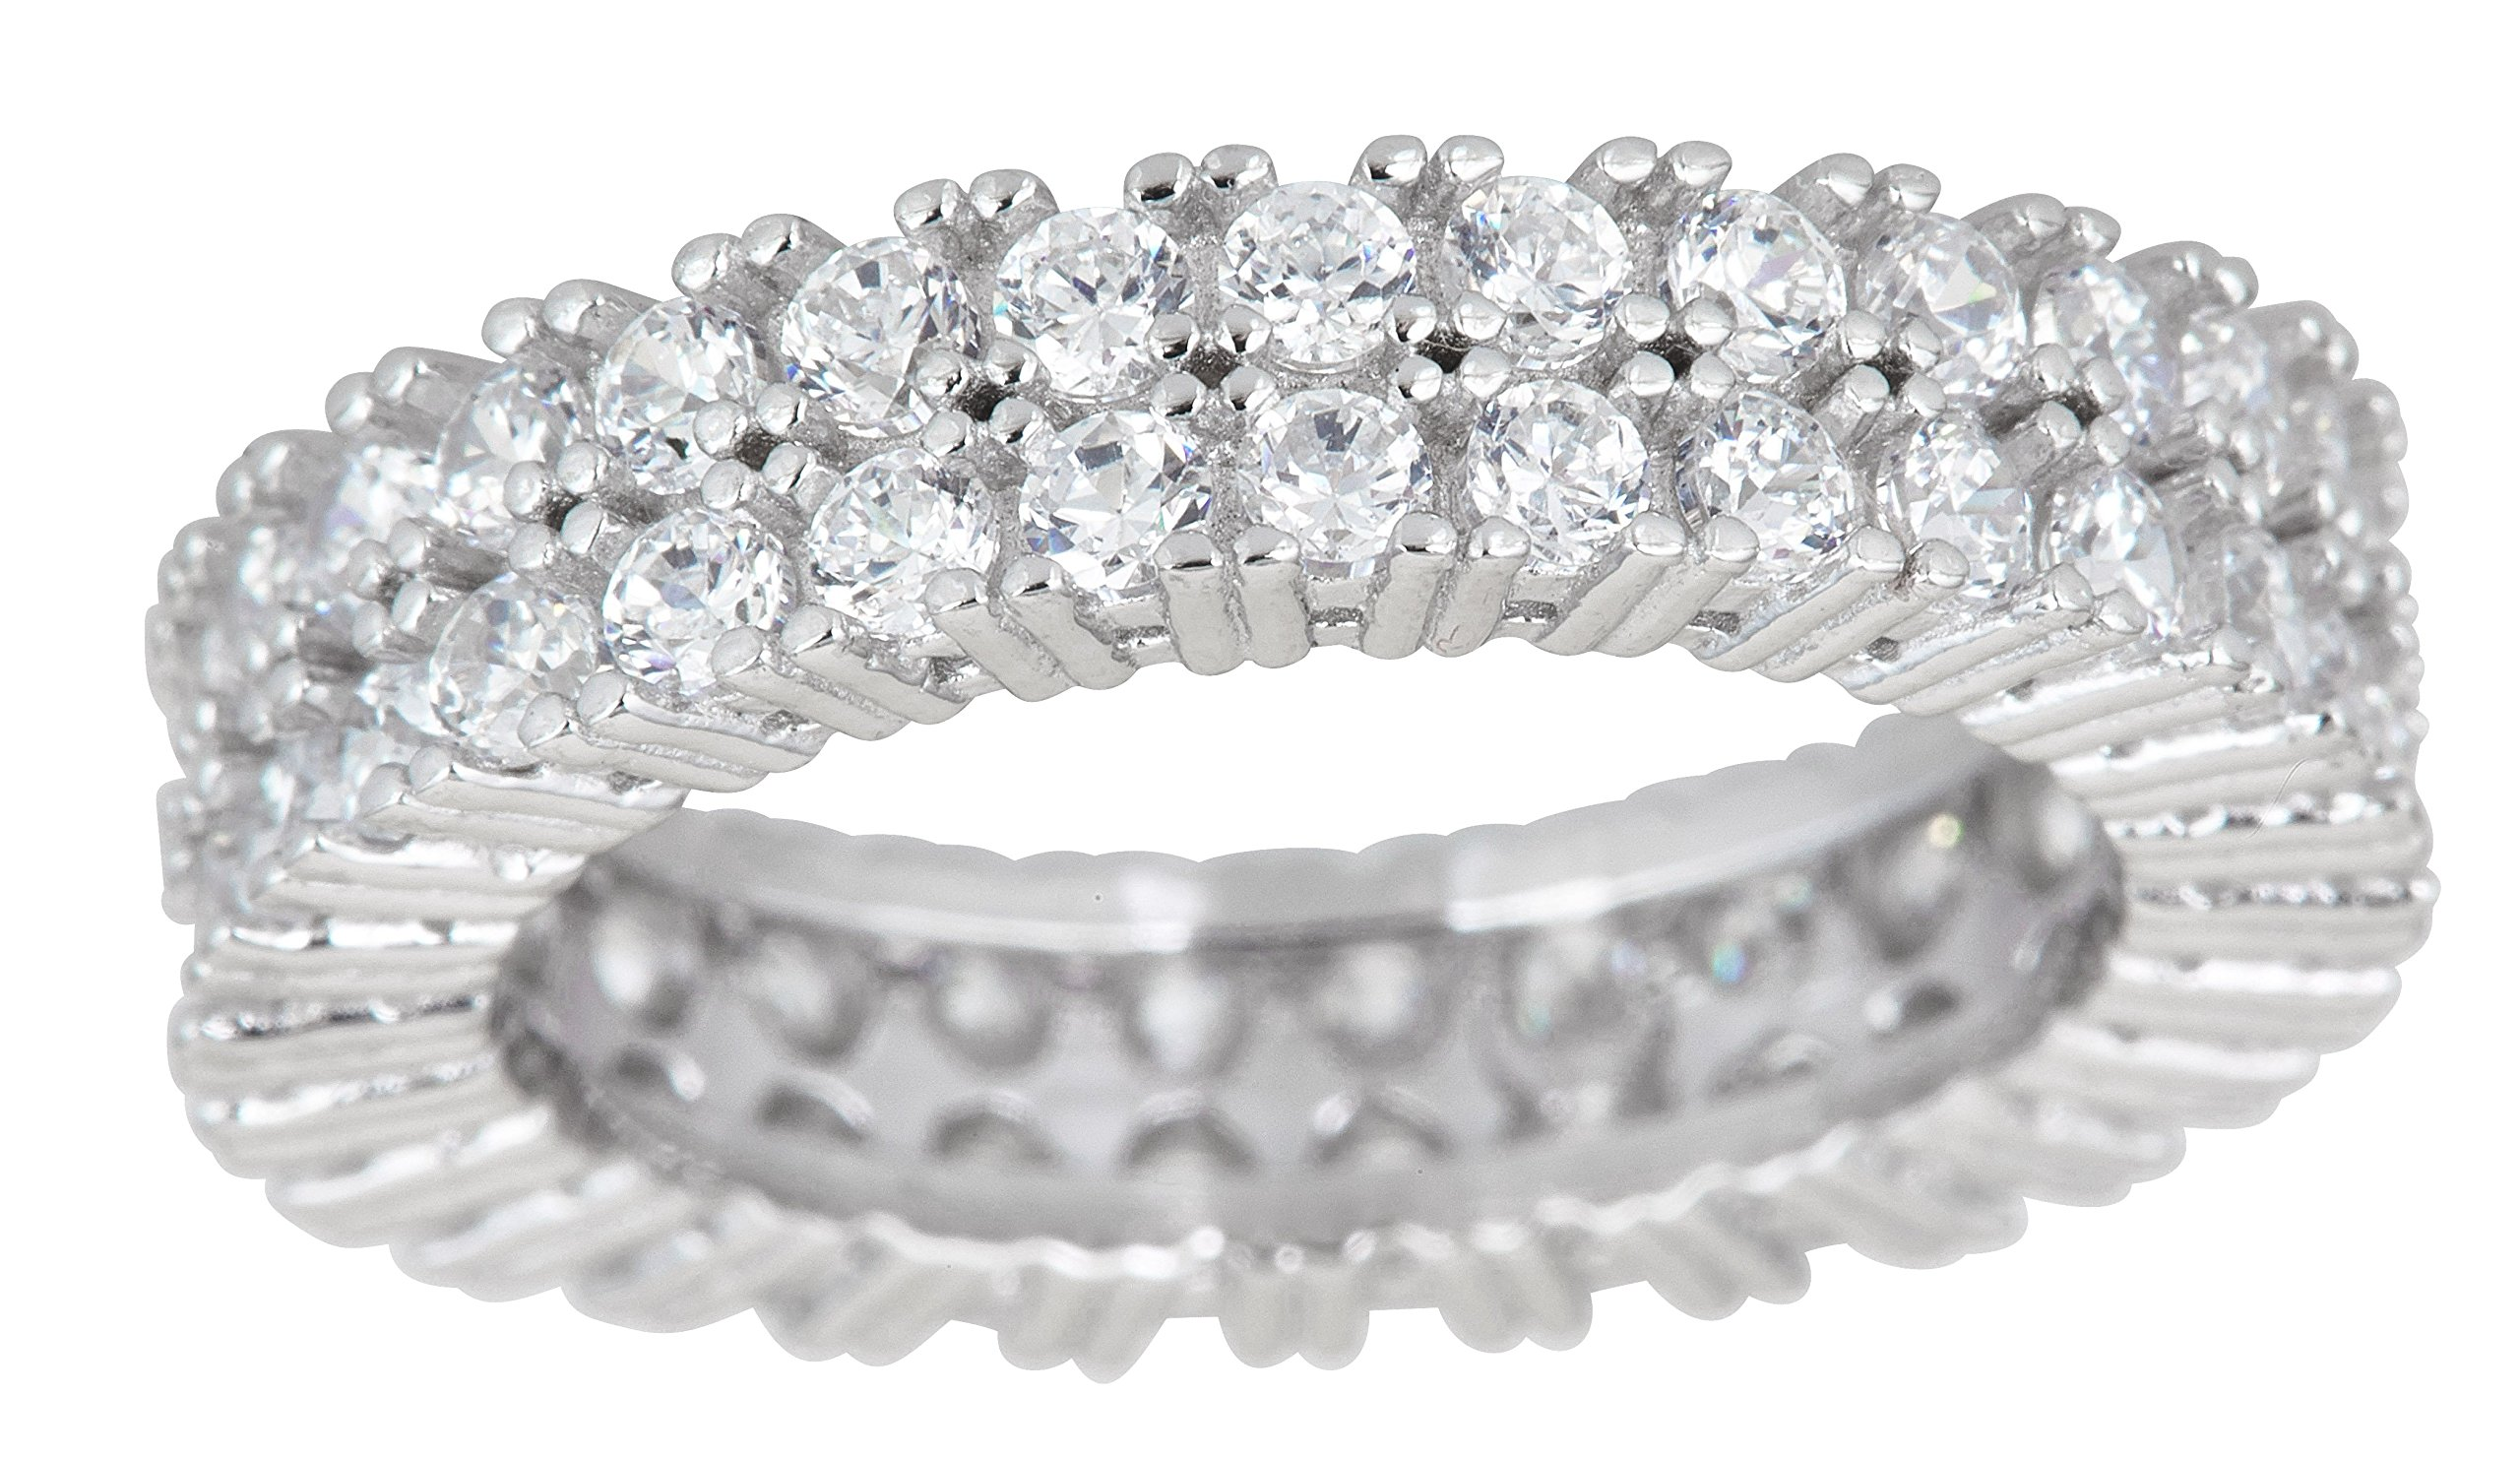 Sterling Silver 2 Row Prong Set Round Cut Cubic Zirconia Eternity Band Ring